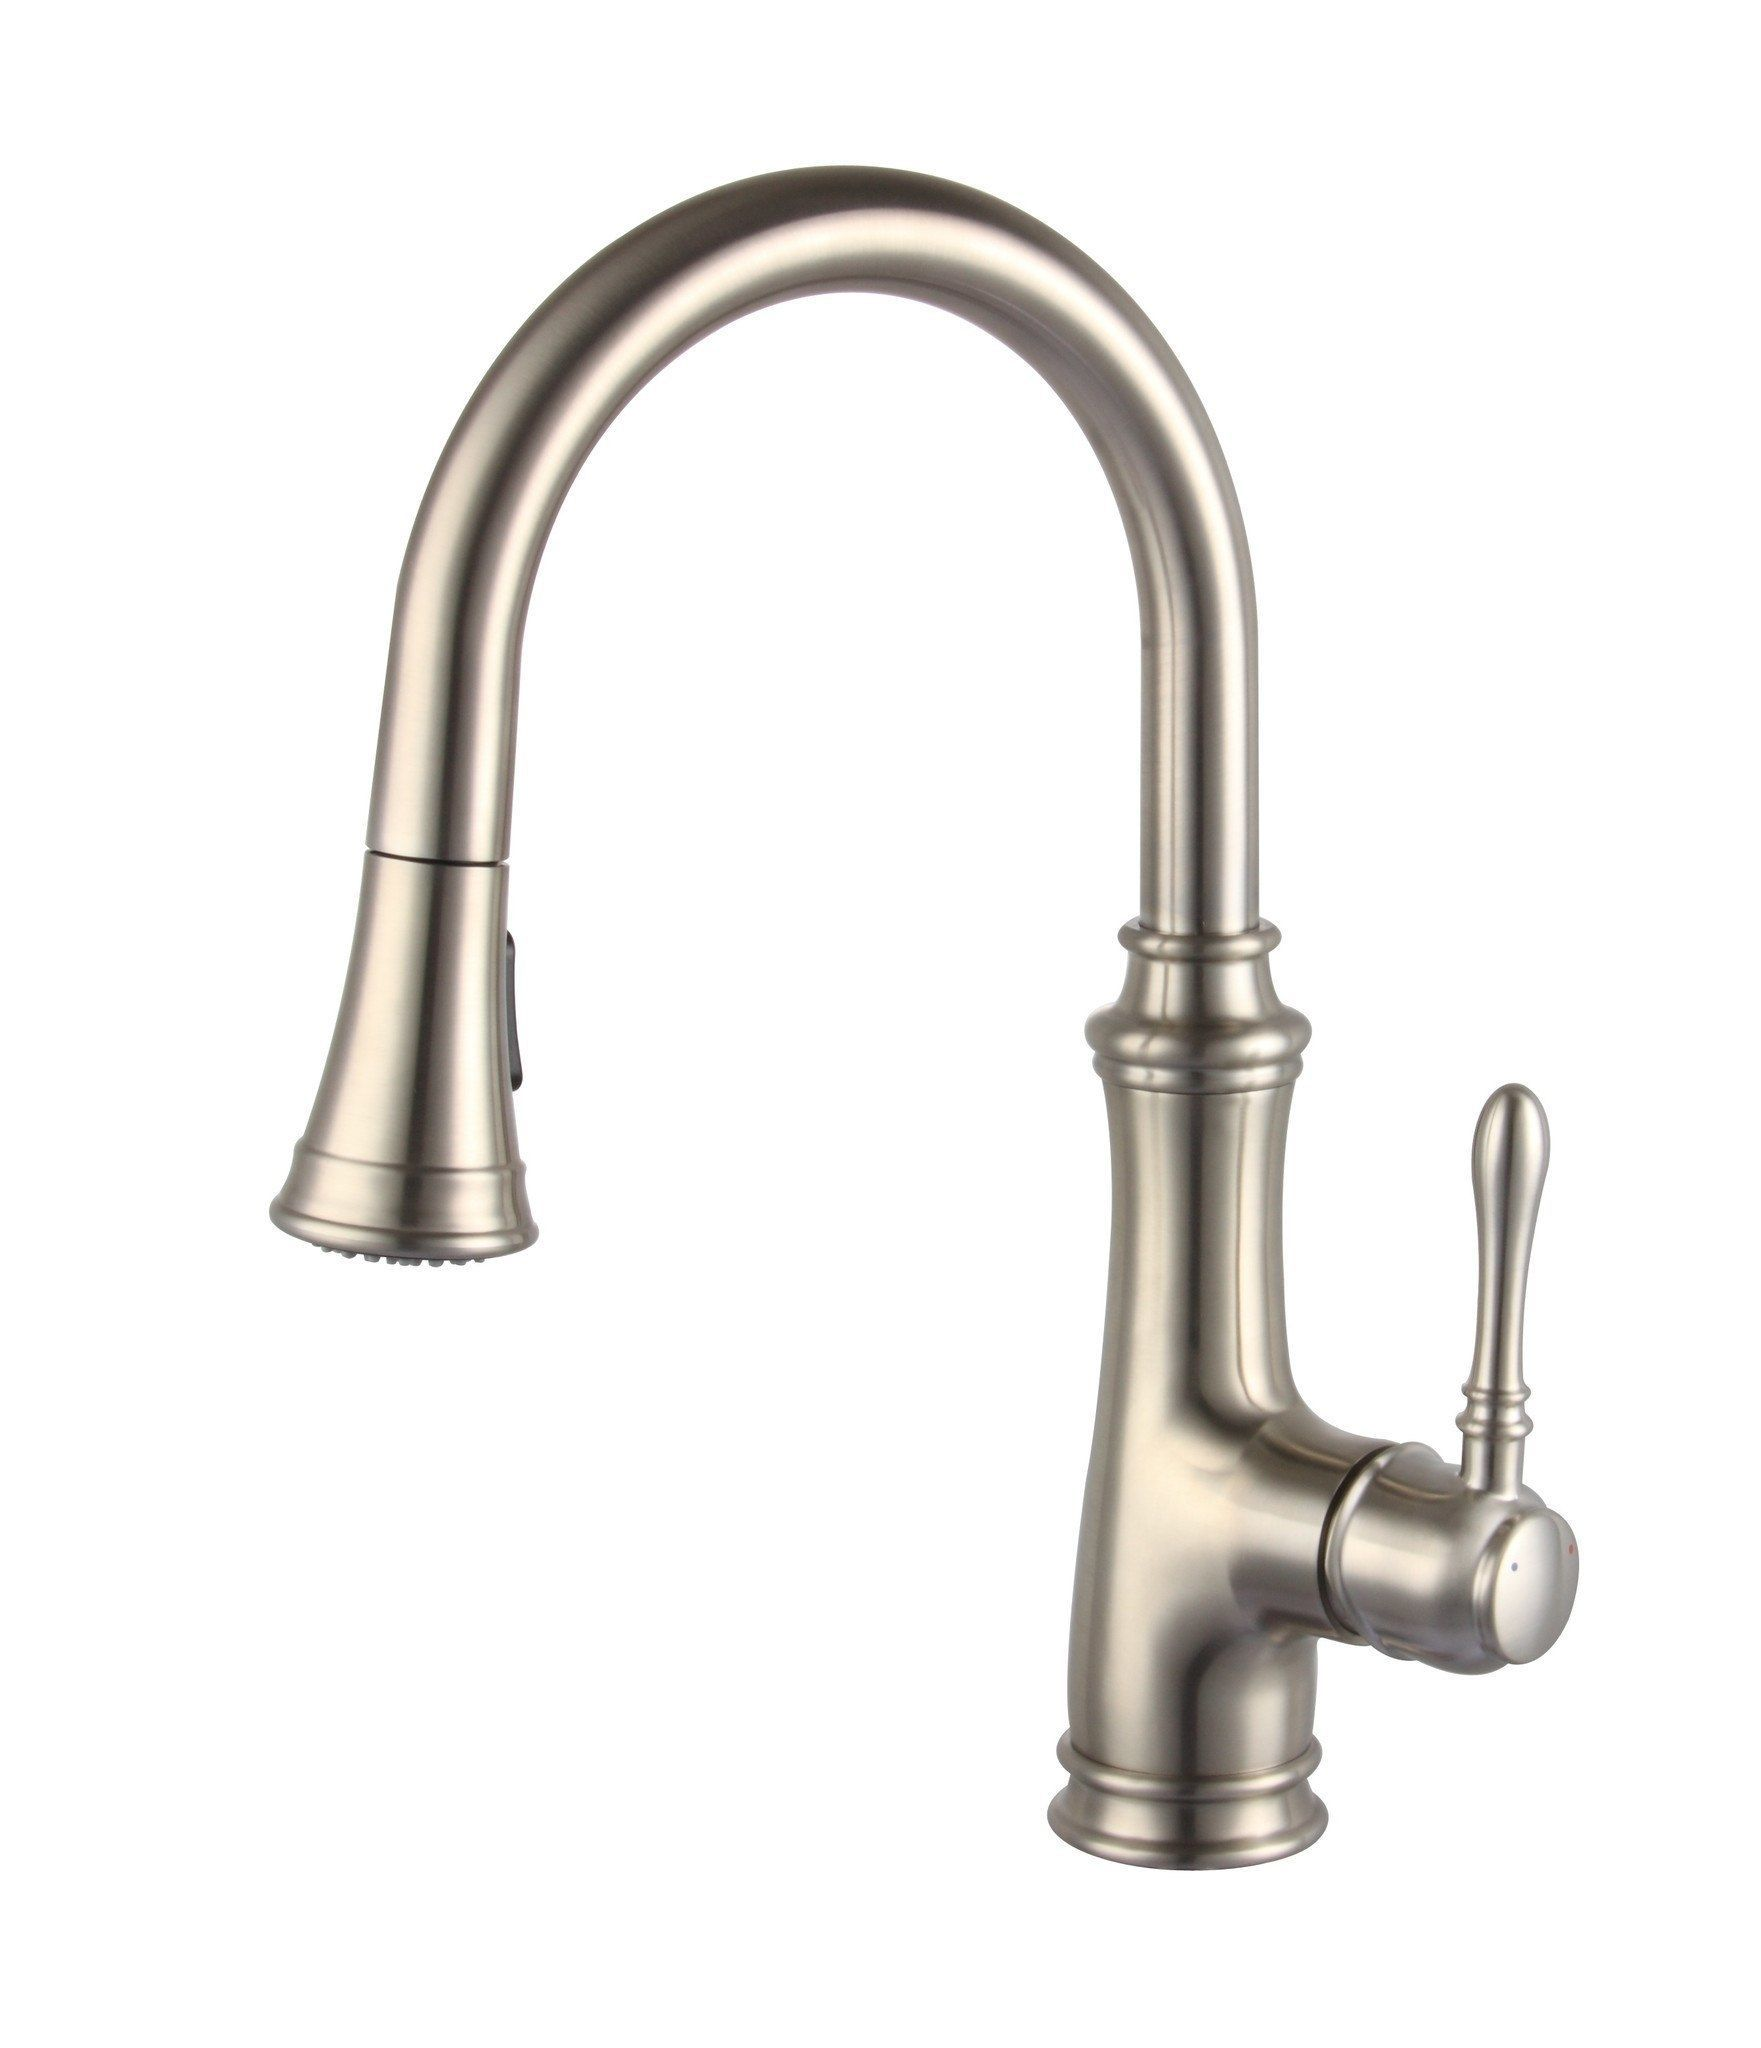 Delta Brushed Nickel Pull Kitchen Faucet Wallmountpulldownfaucet Brushed Nickel Kitchen Faucet Kitchen Faucet Brushed Nickel Faucet Delta brushed nickel kitchen faucet